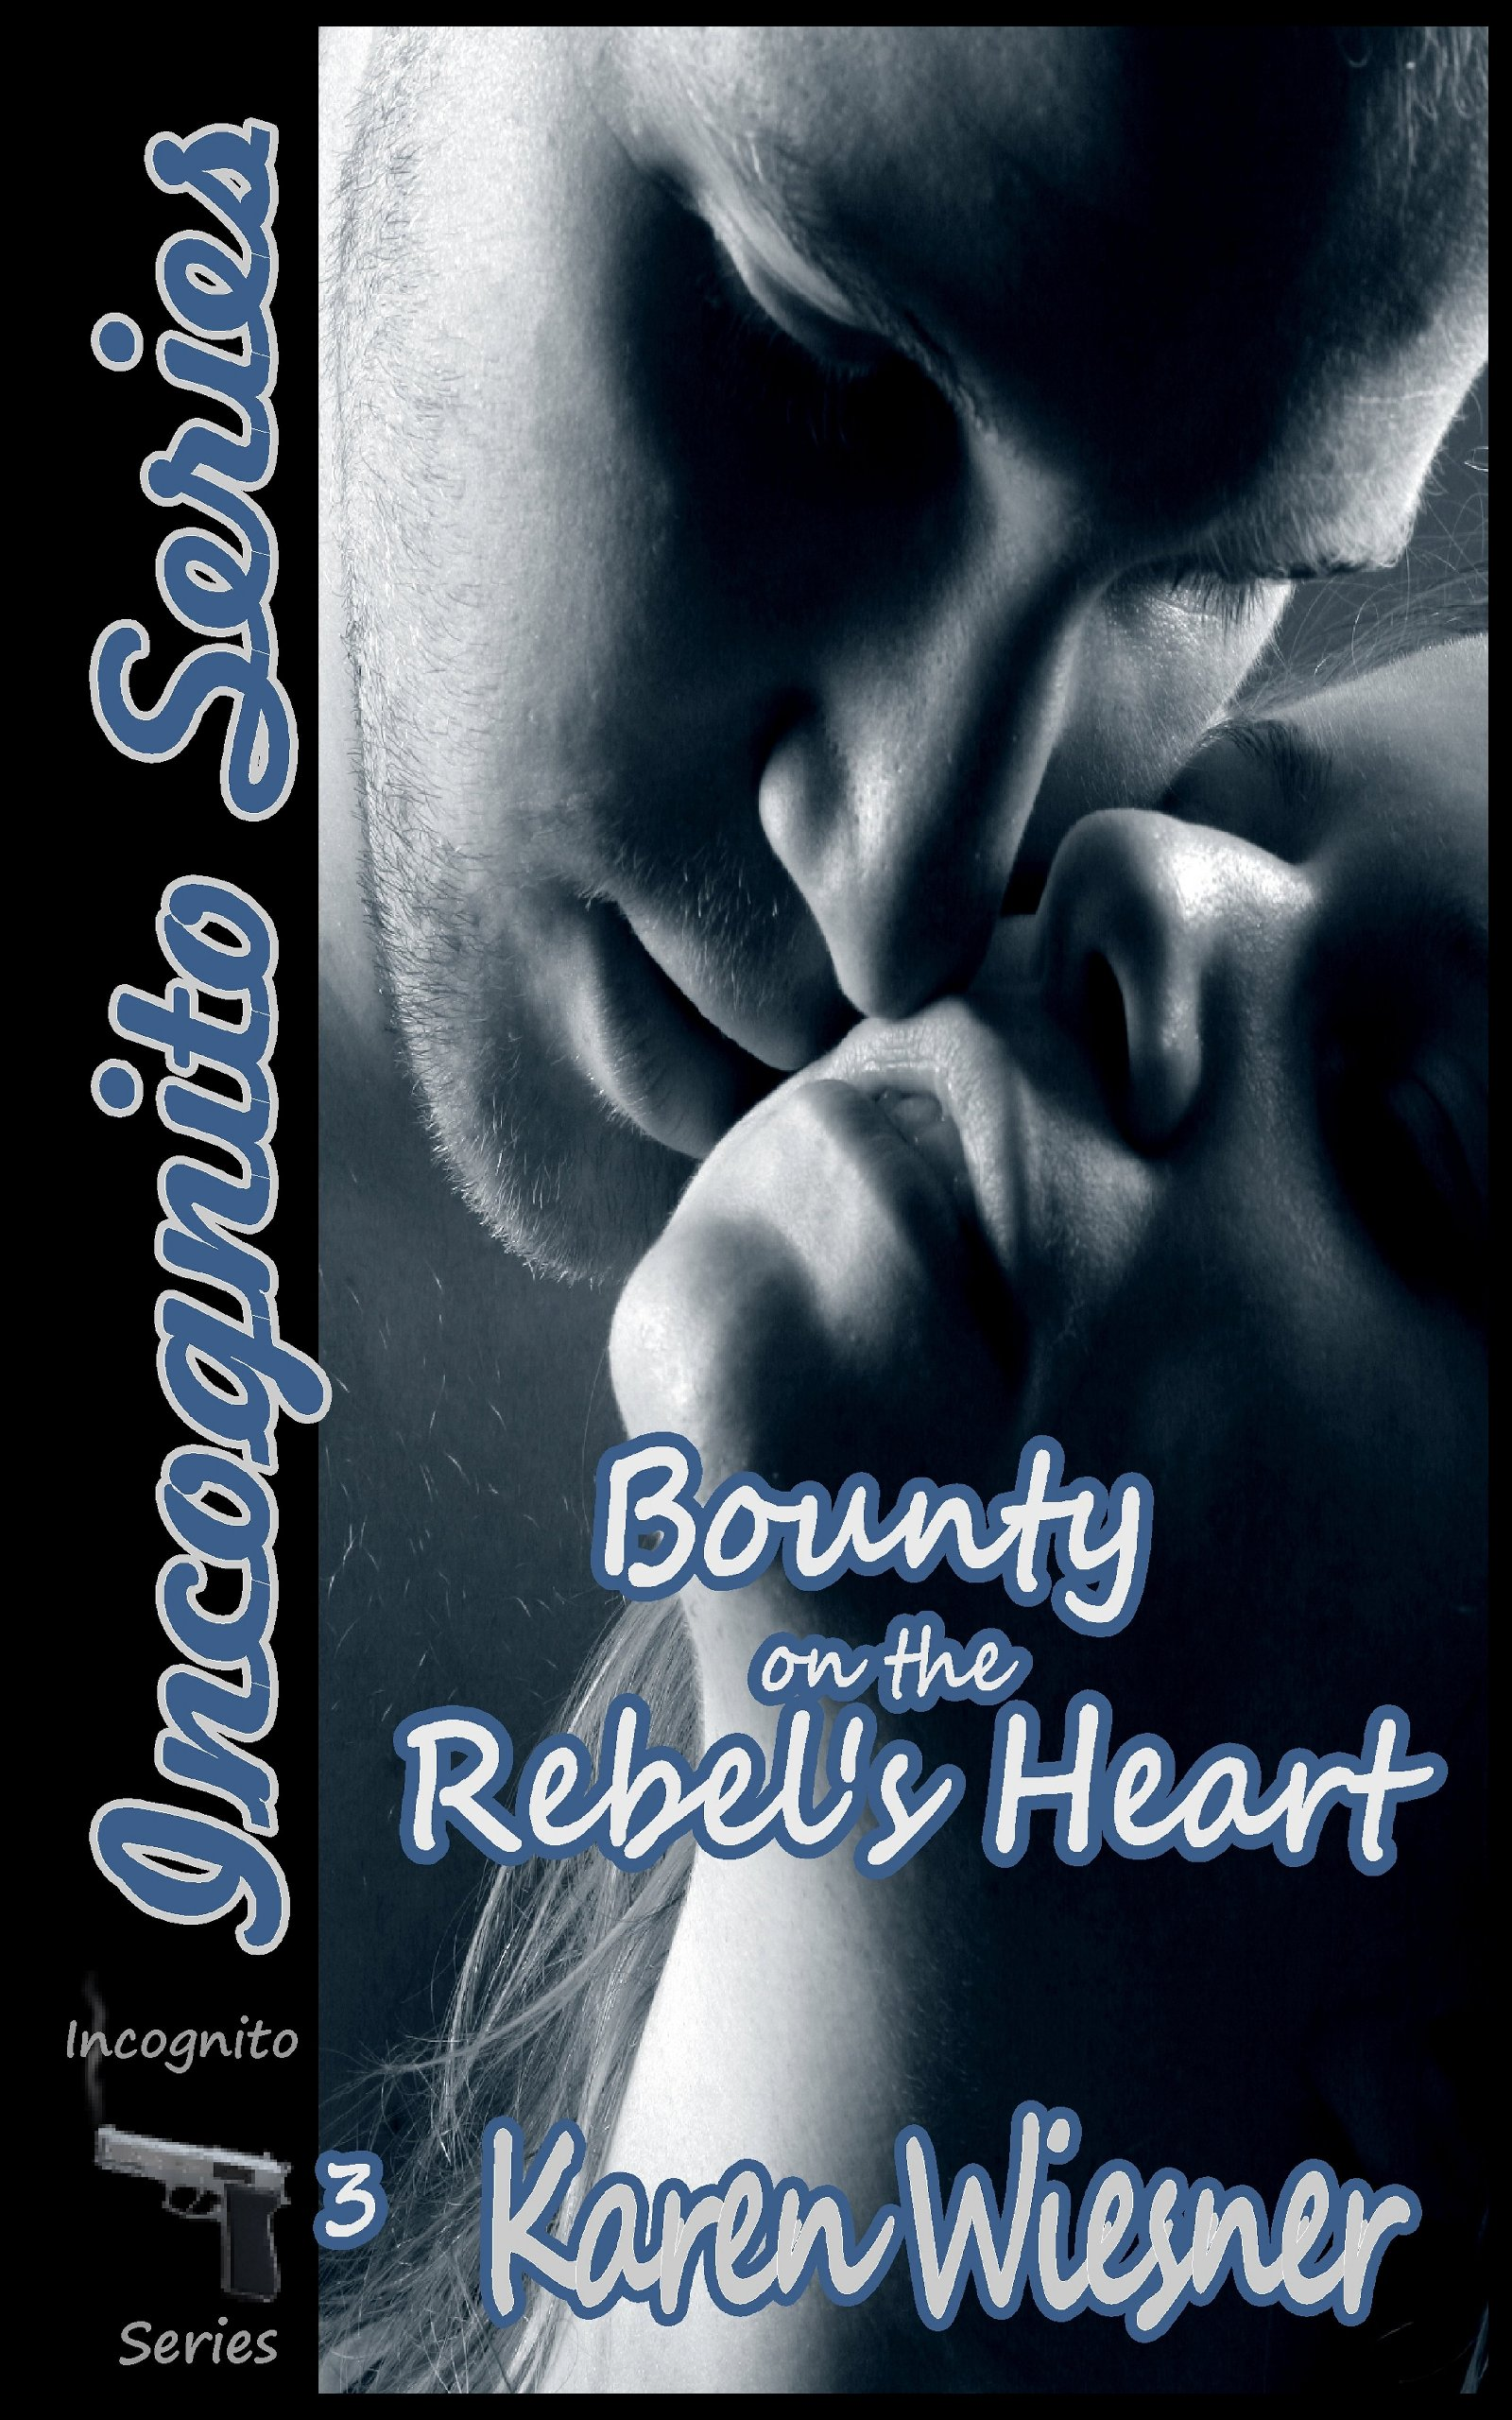 Karen Wiesner - Bounty on the Rebel's Heart, Book 3 of the Incognito Series